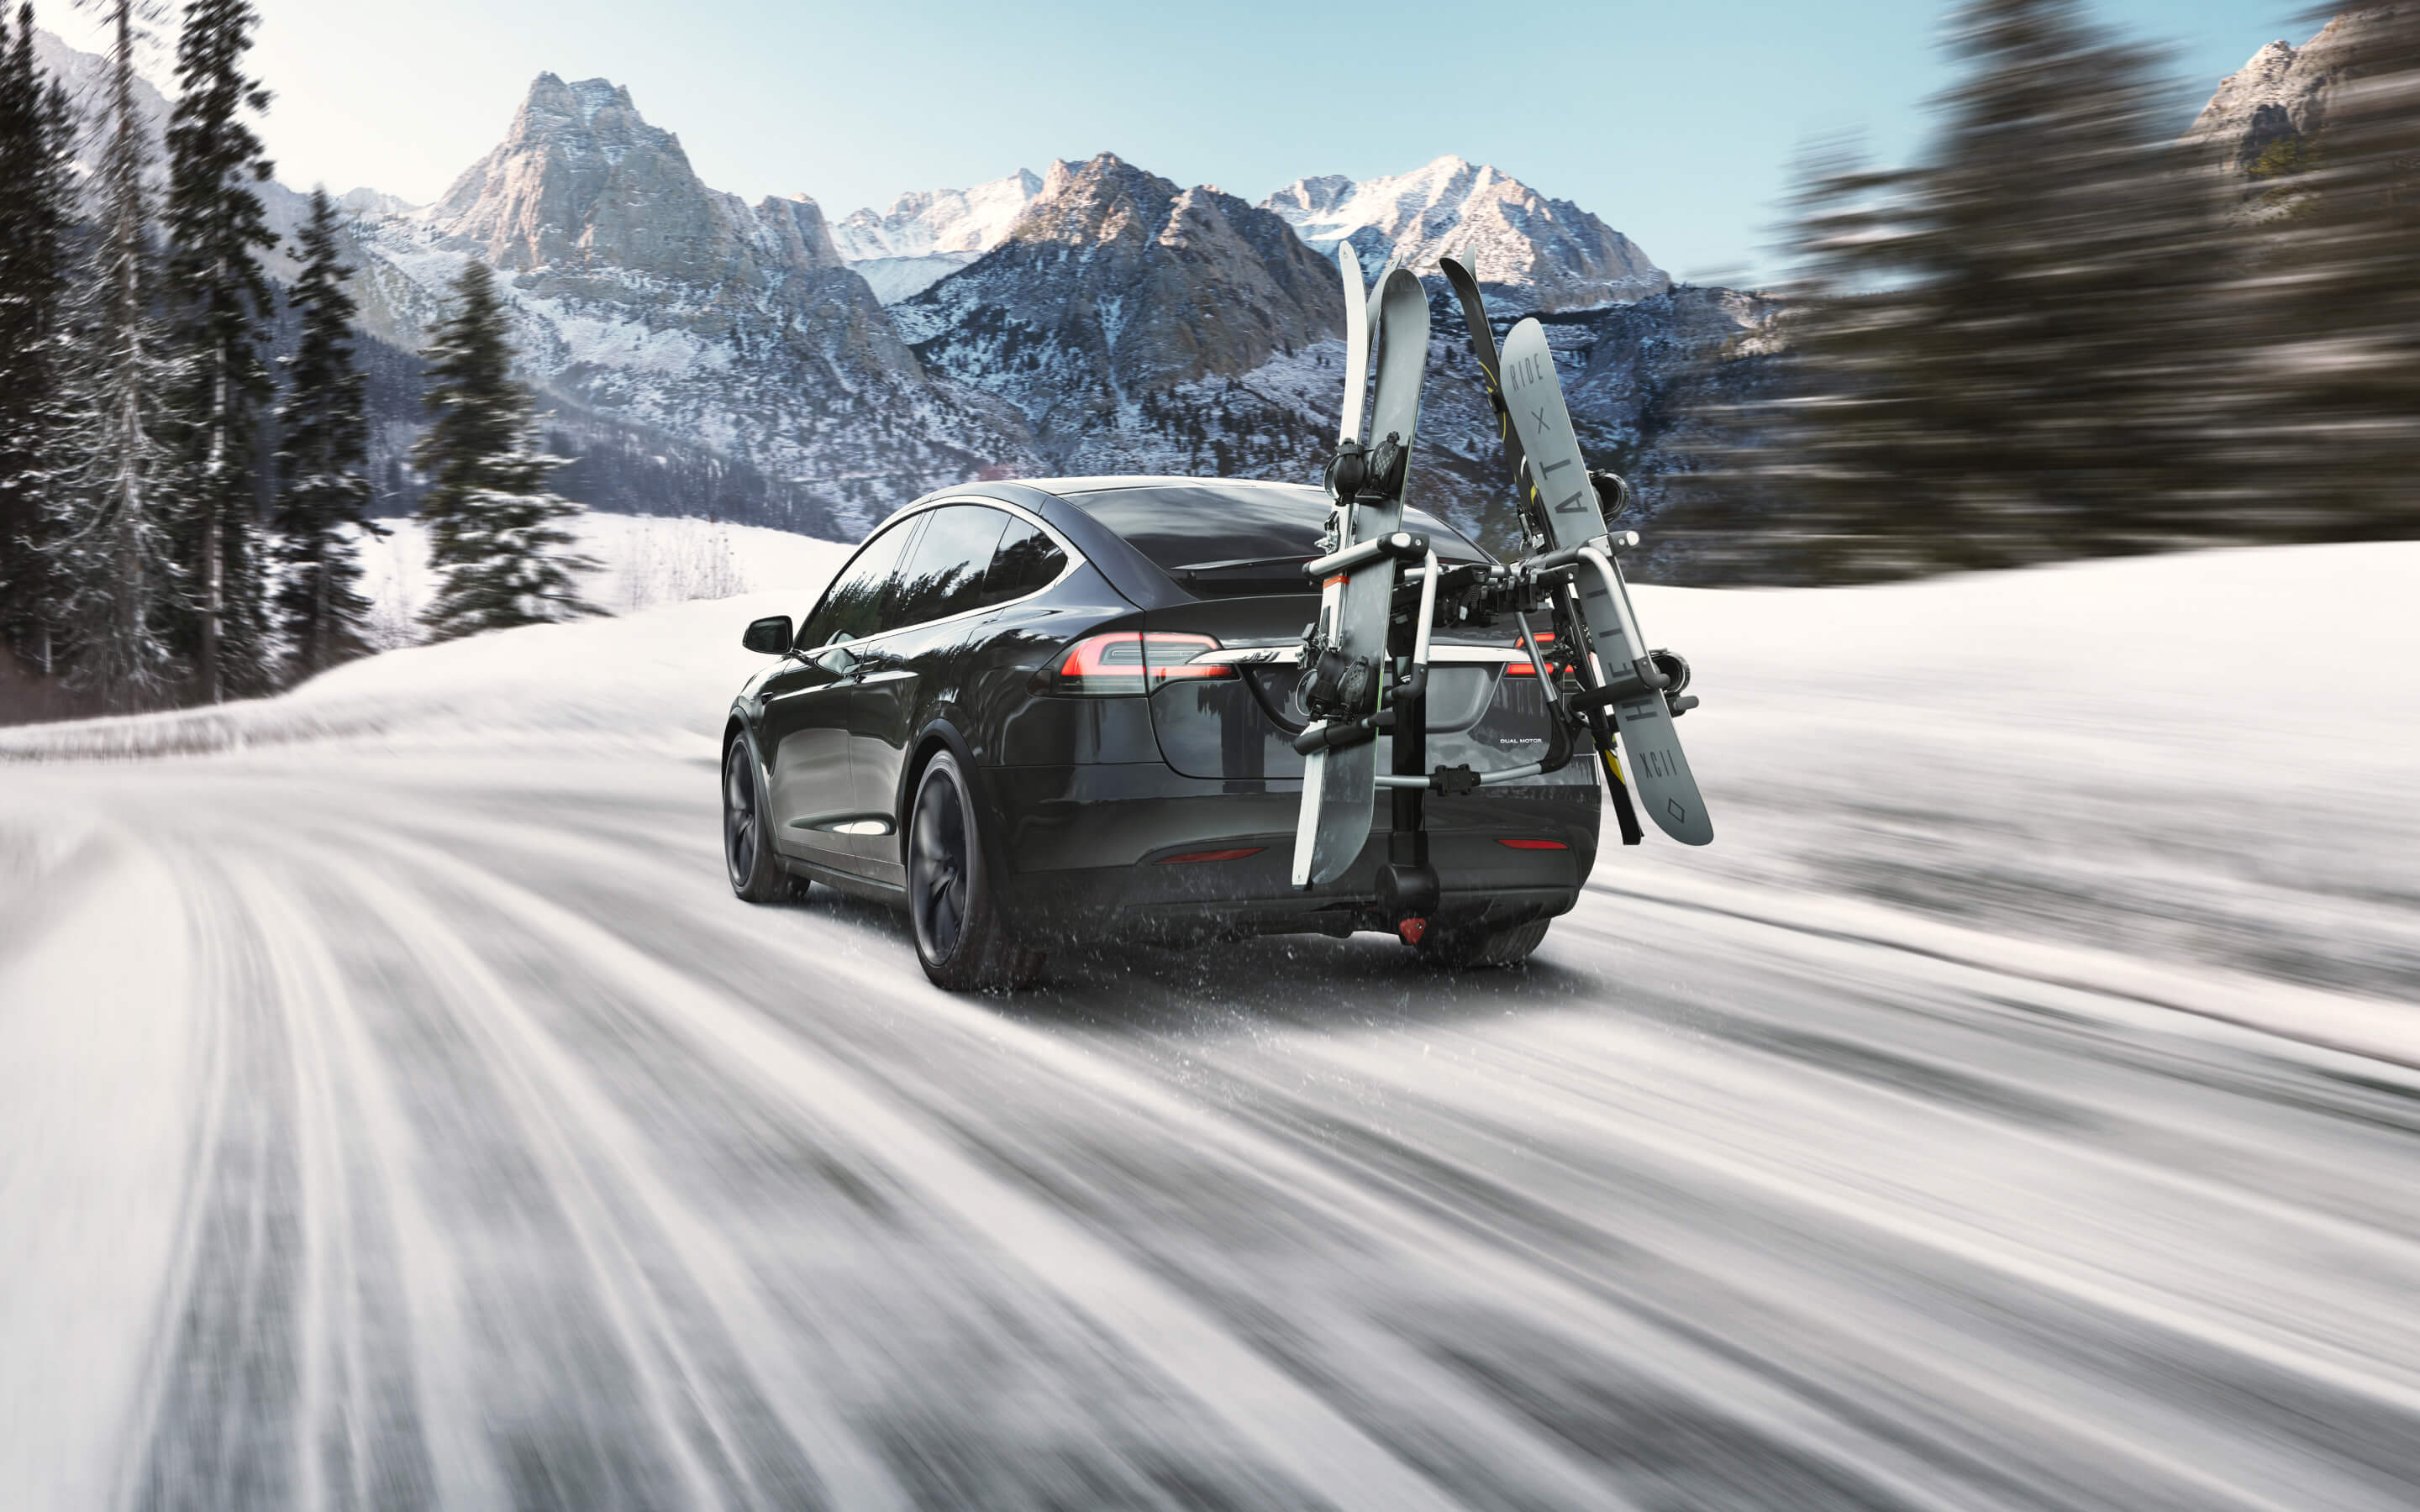 Rear view of black Model X driving through snowy mountains